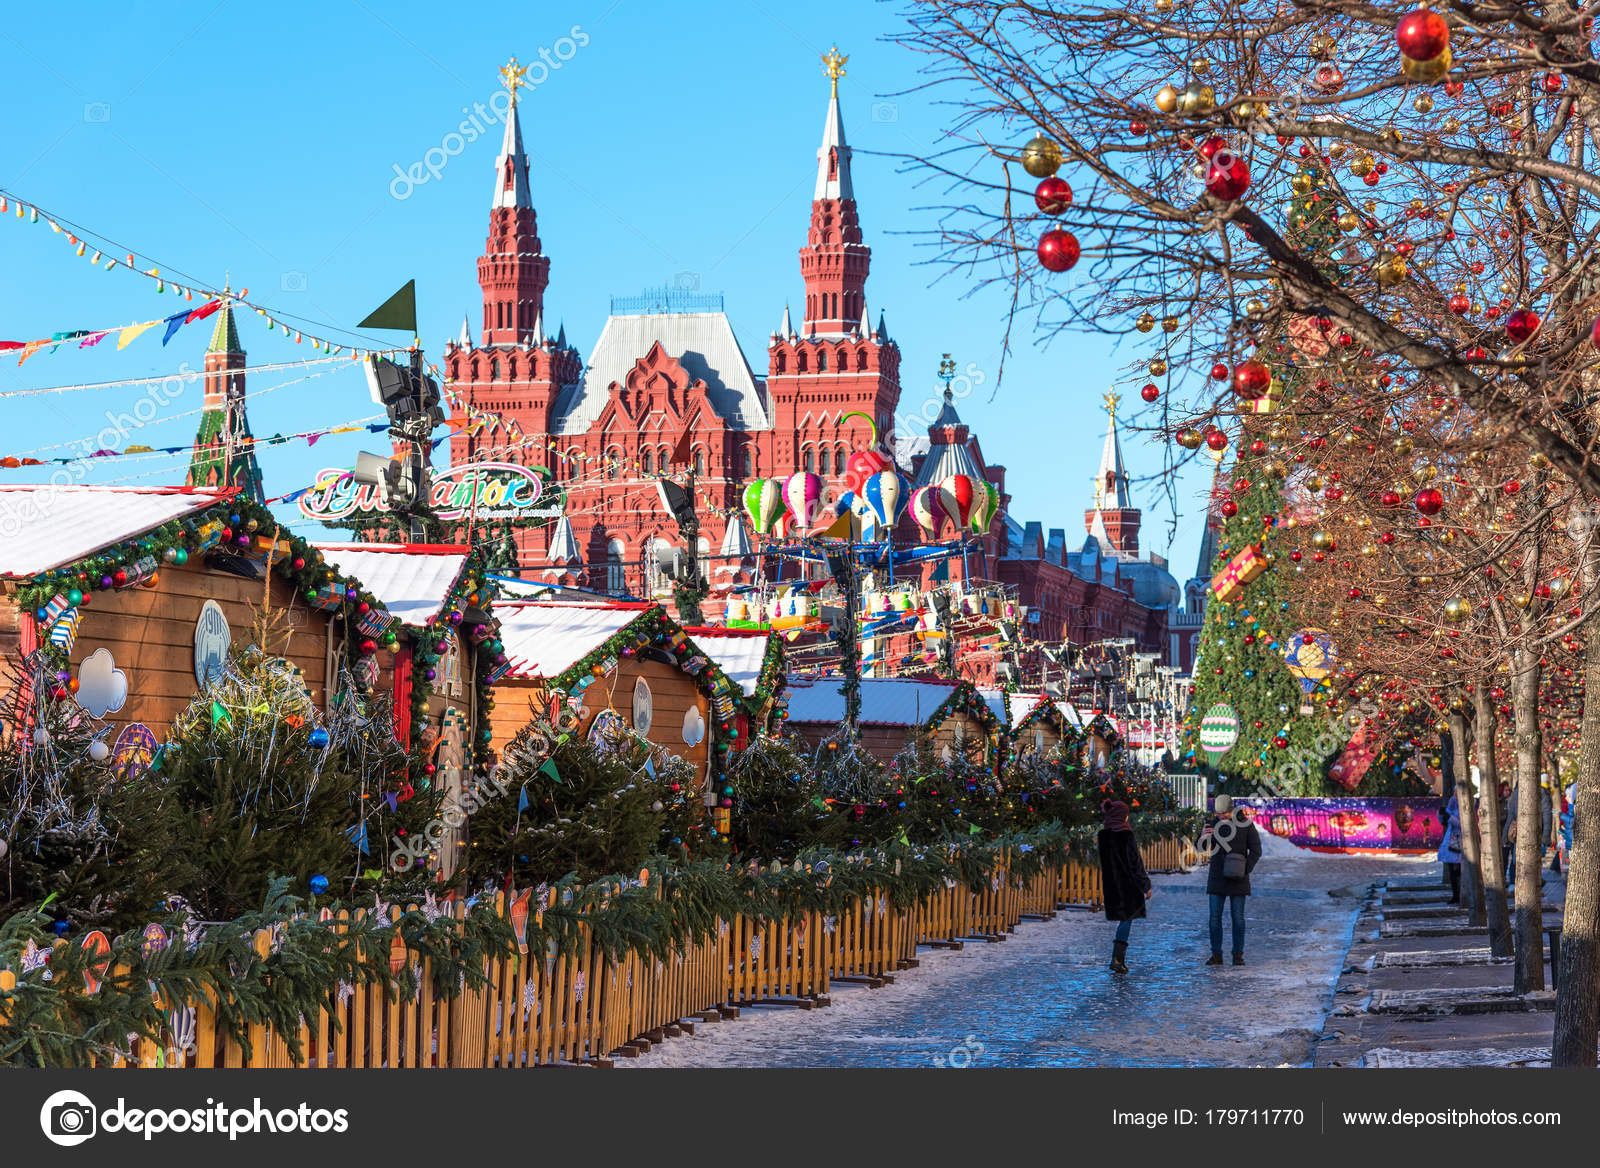 New 2018 in Red Square 53